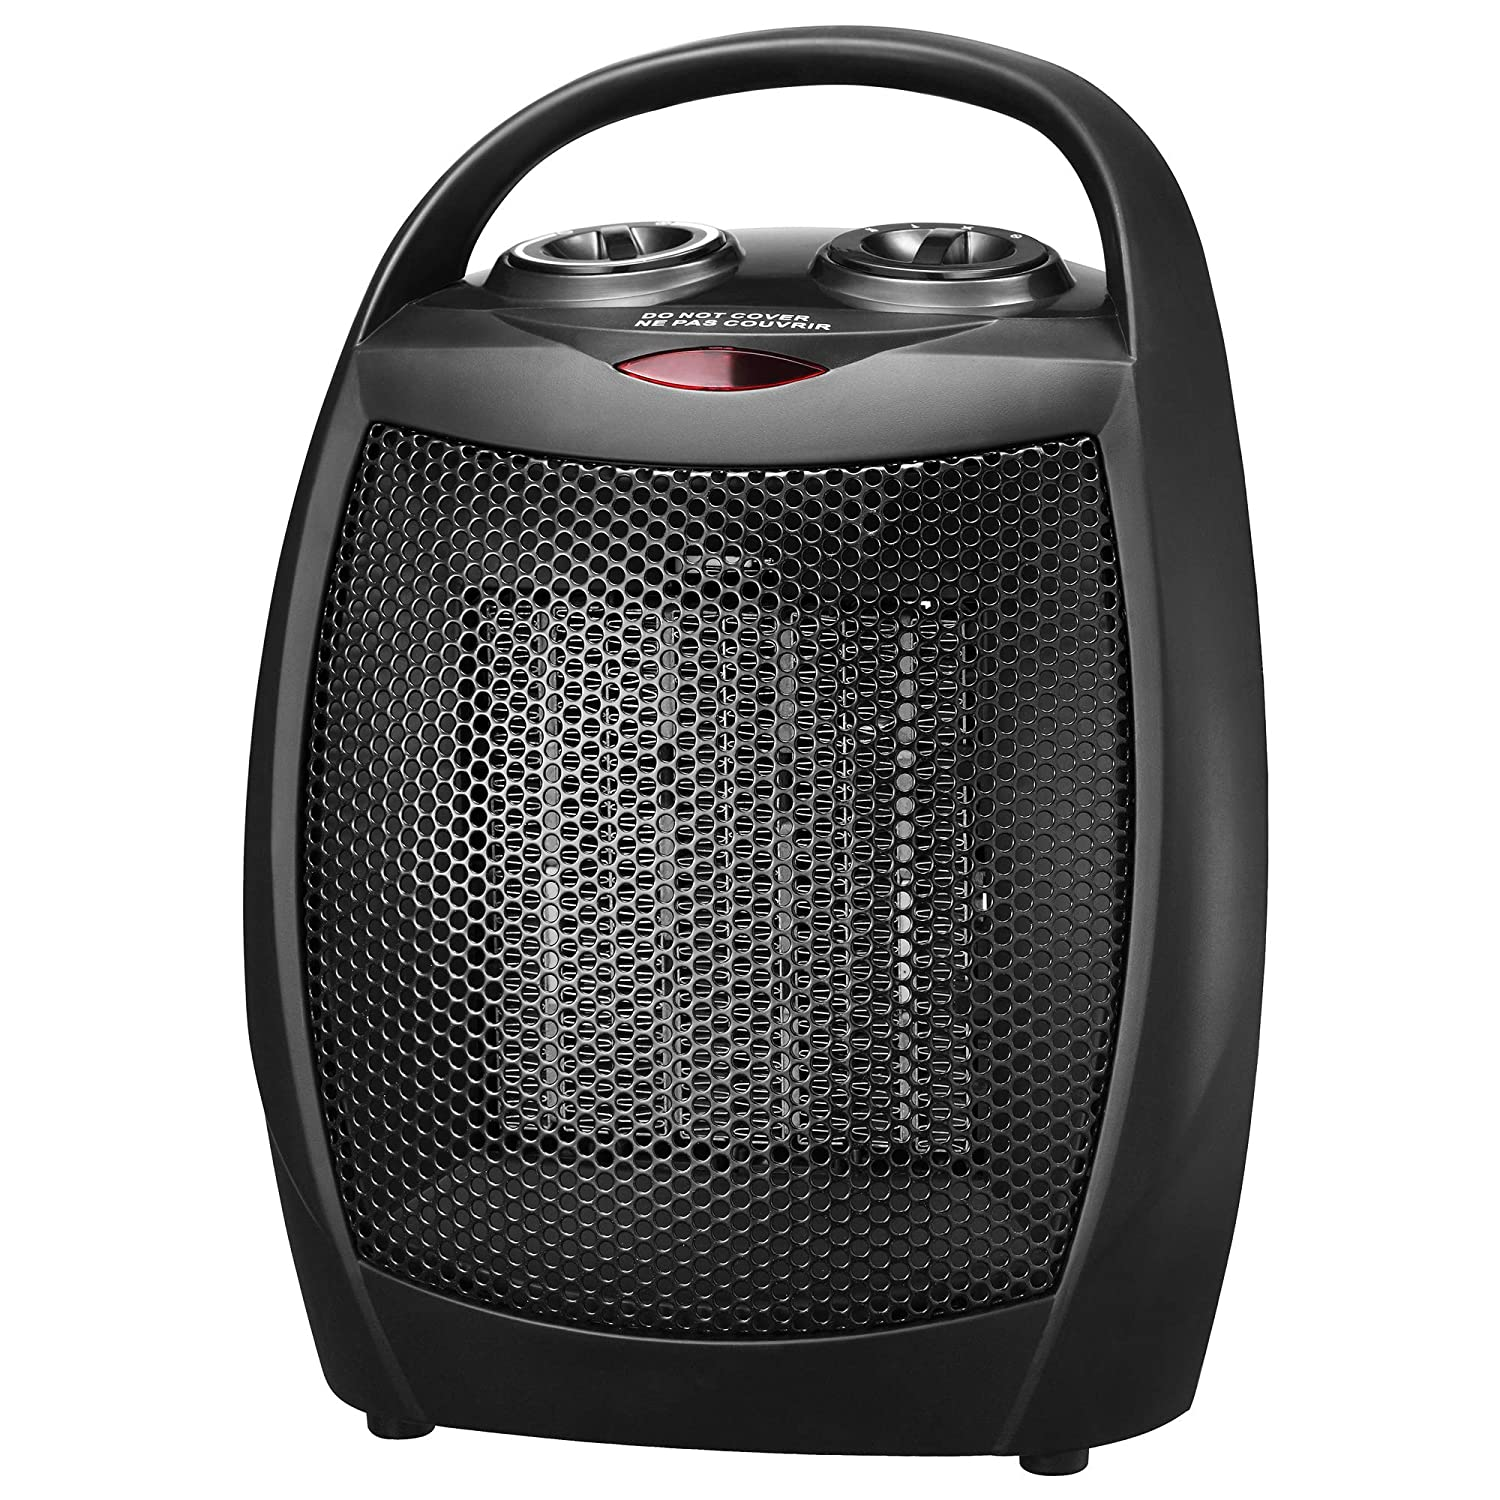 andily Portable Ceramic Space Heater for Home and Office Indoor Use with Adjustable Thermostat Overheat Protection and Carrying Handle ETL Listed, 750W 1500W